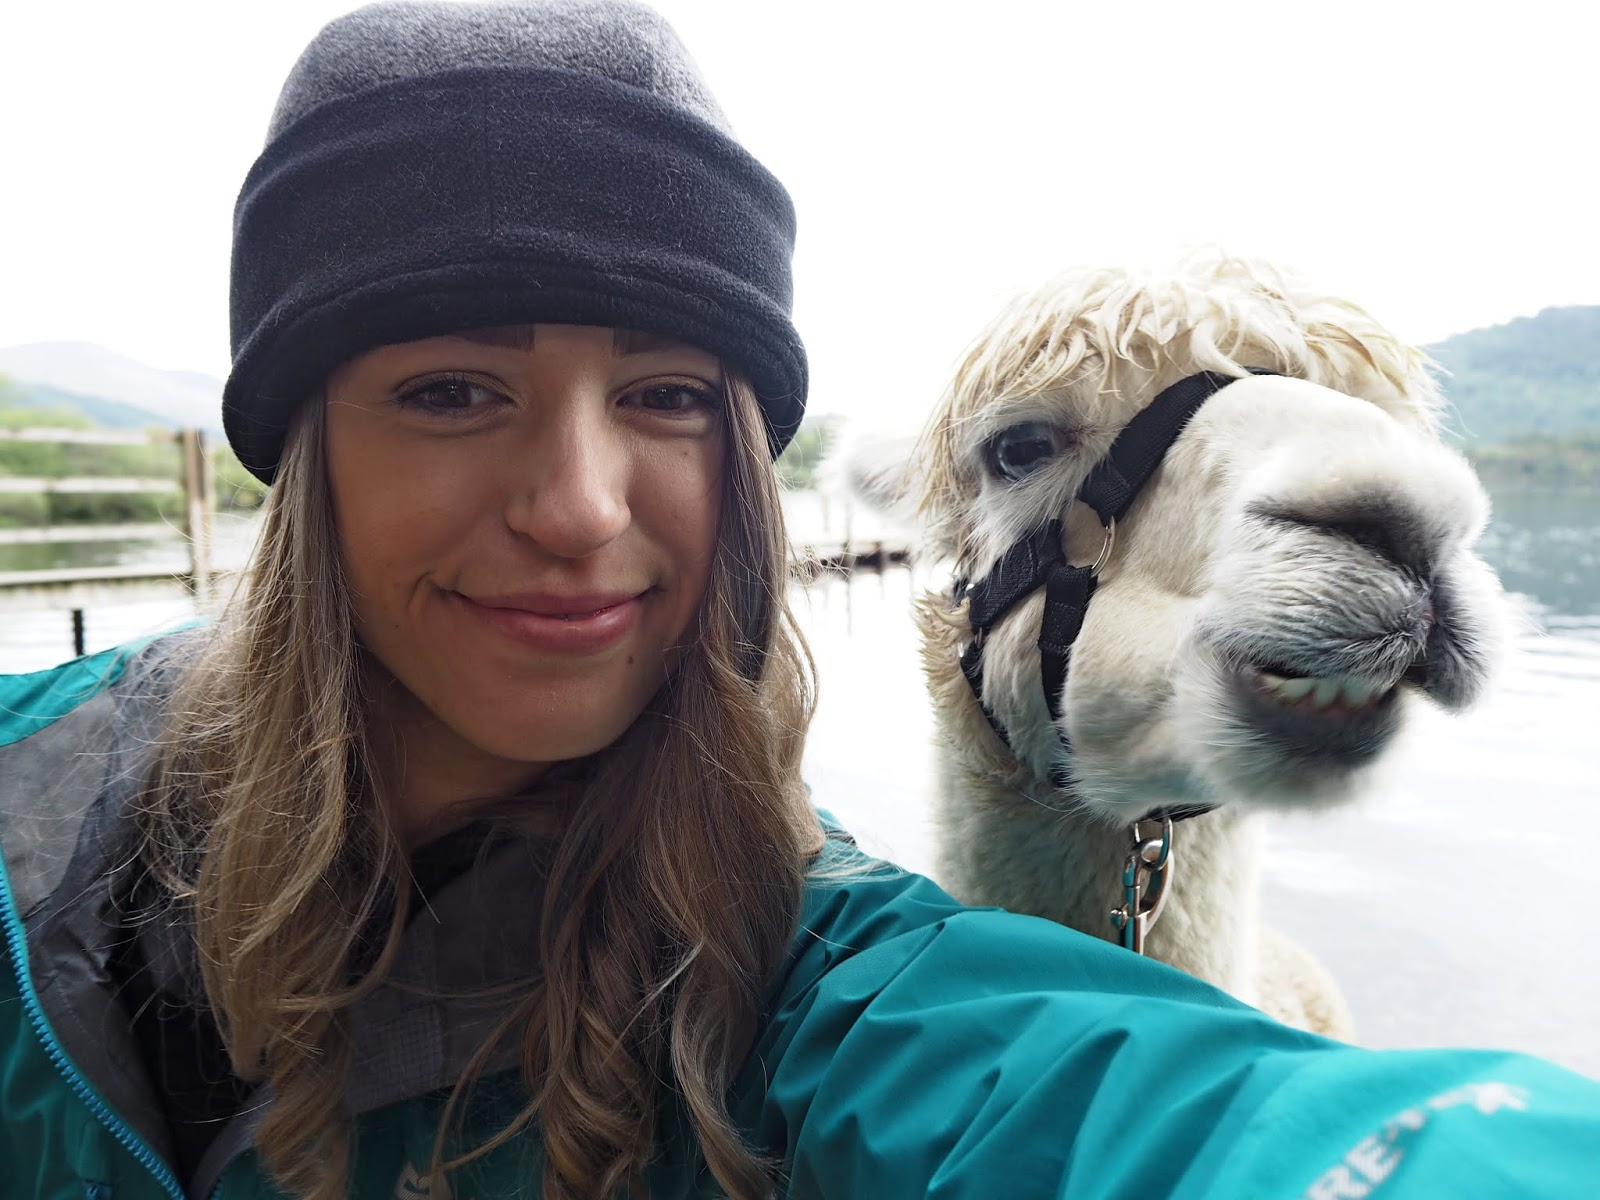 Selfie with Alpaca